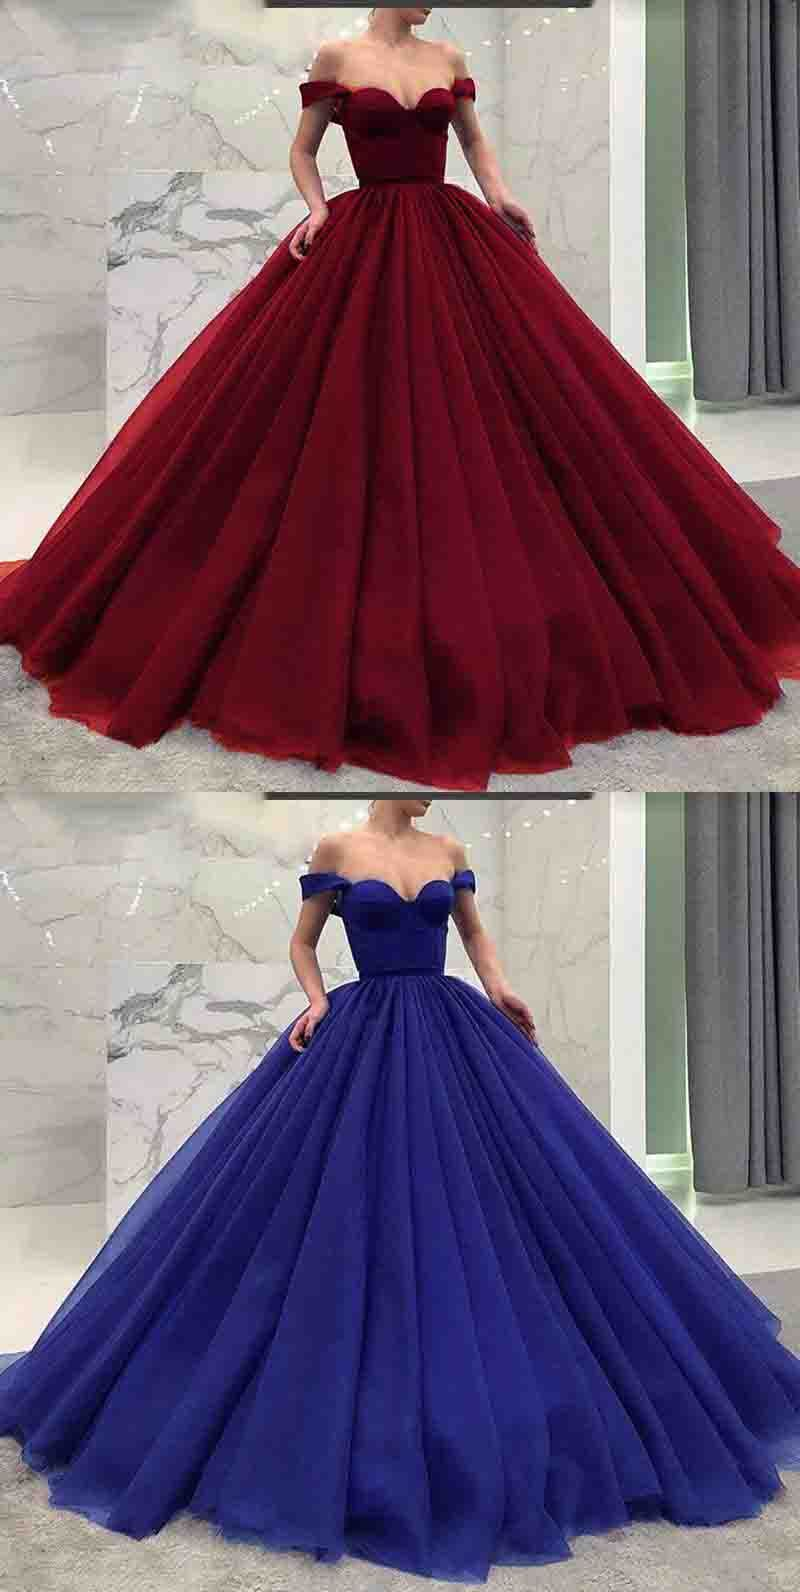 Poofy Dresses That Are Pretty